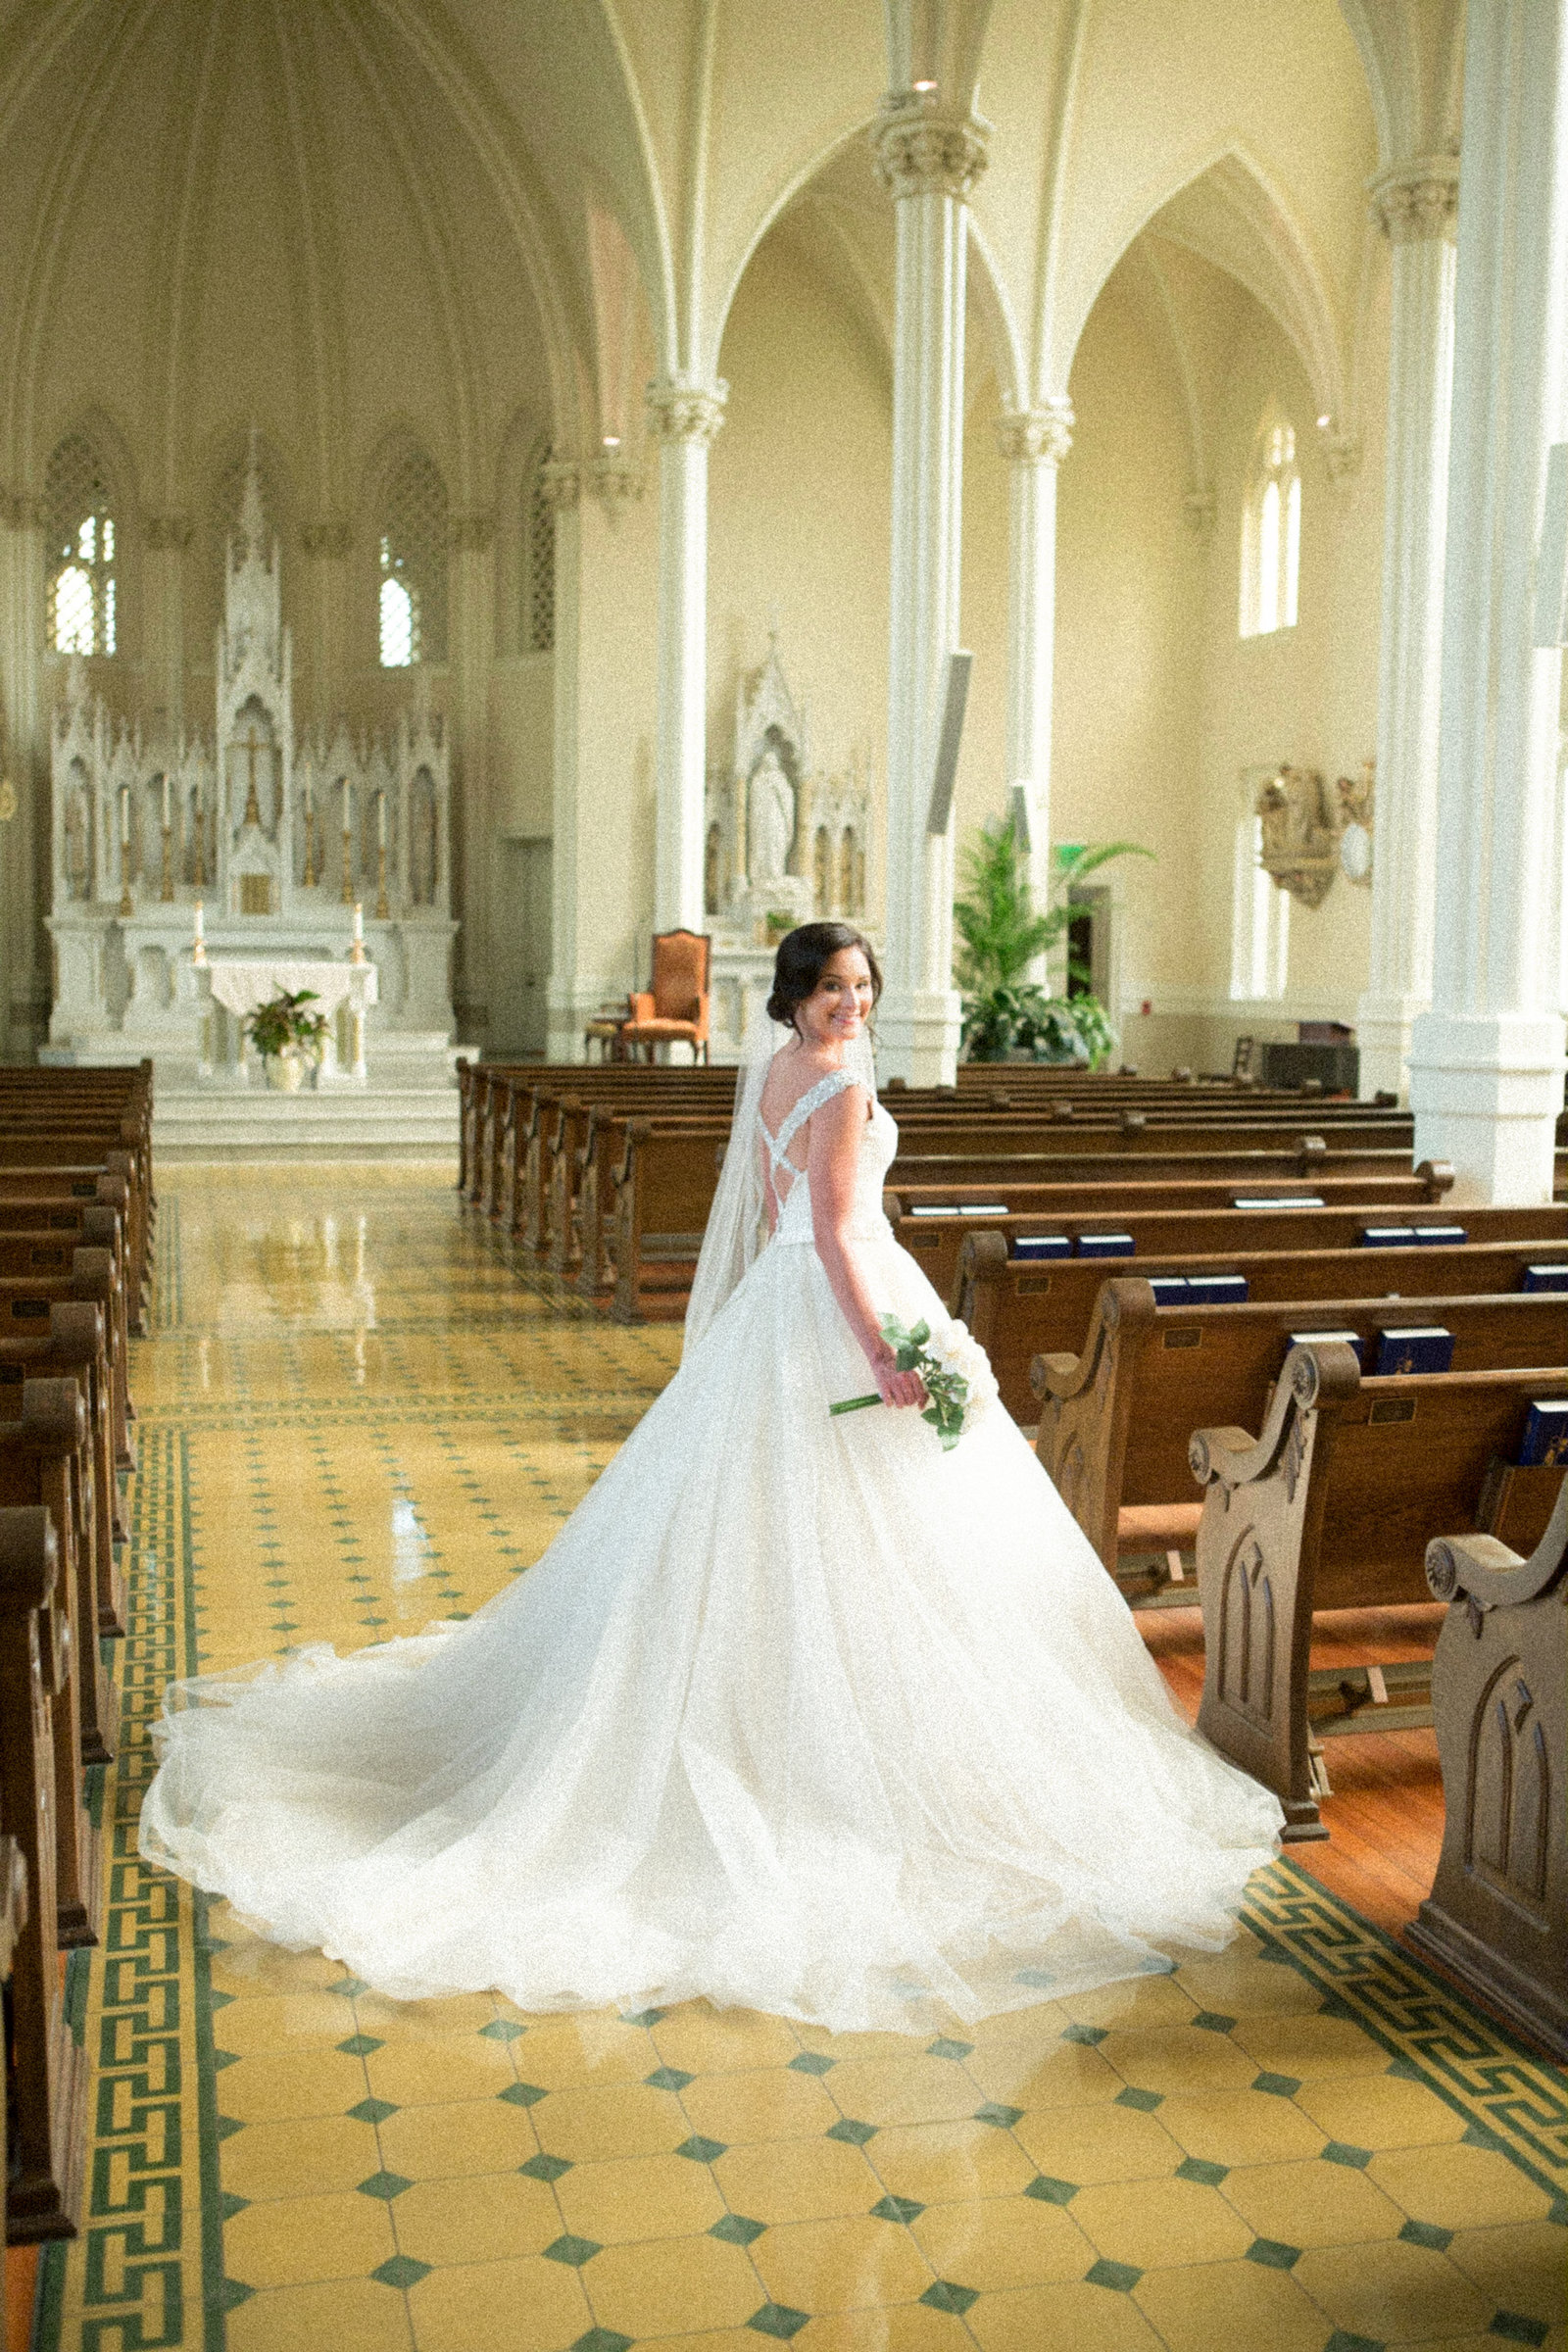 Kayla Szymanski bridal portait at St. Joseph Catholic Church at Springhill College in Mobile, Alabama.